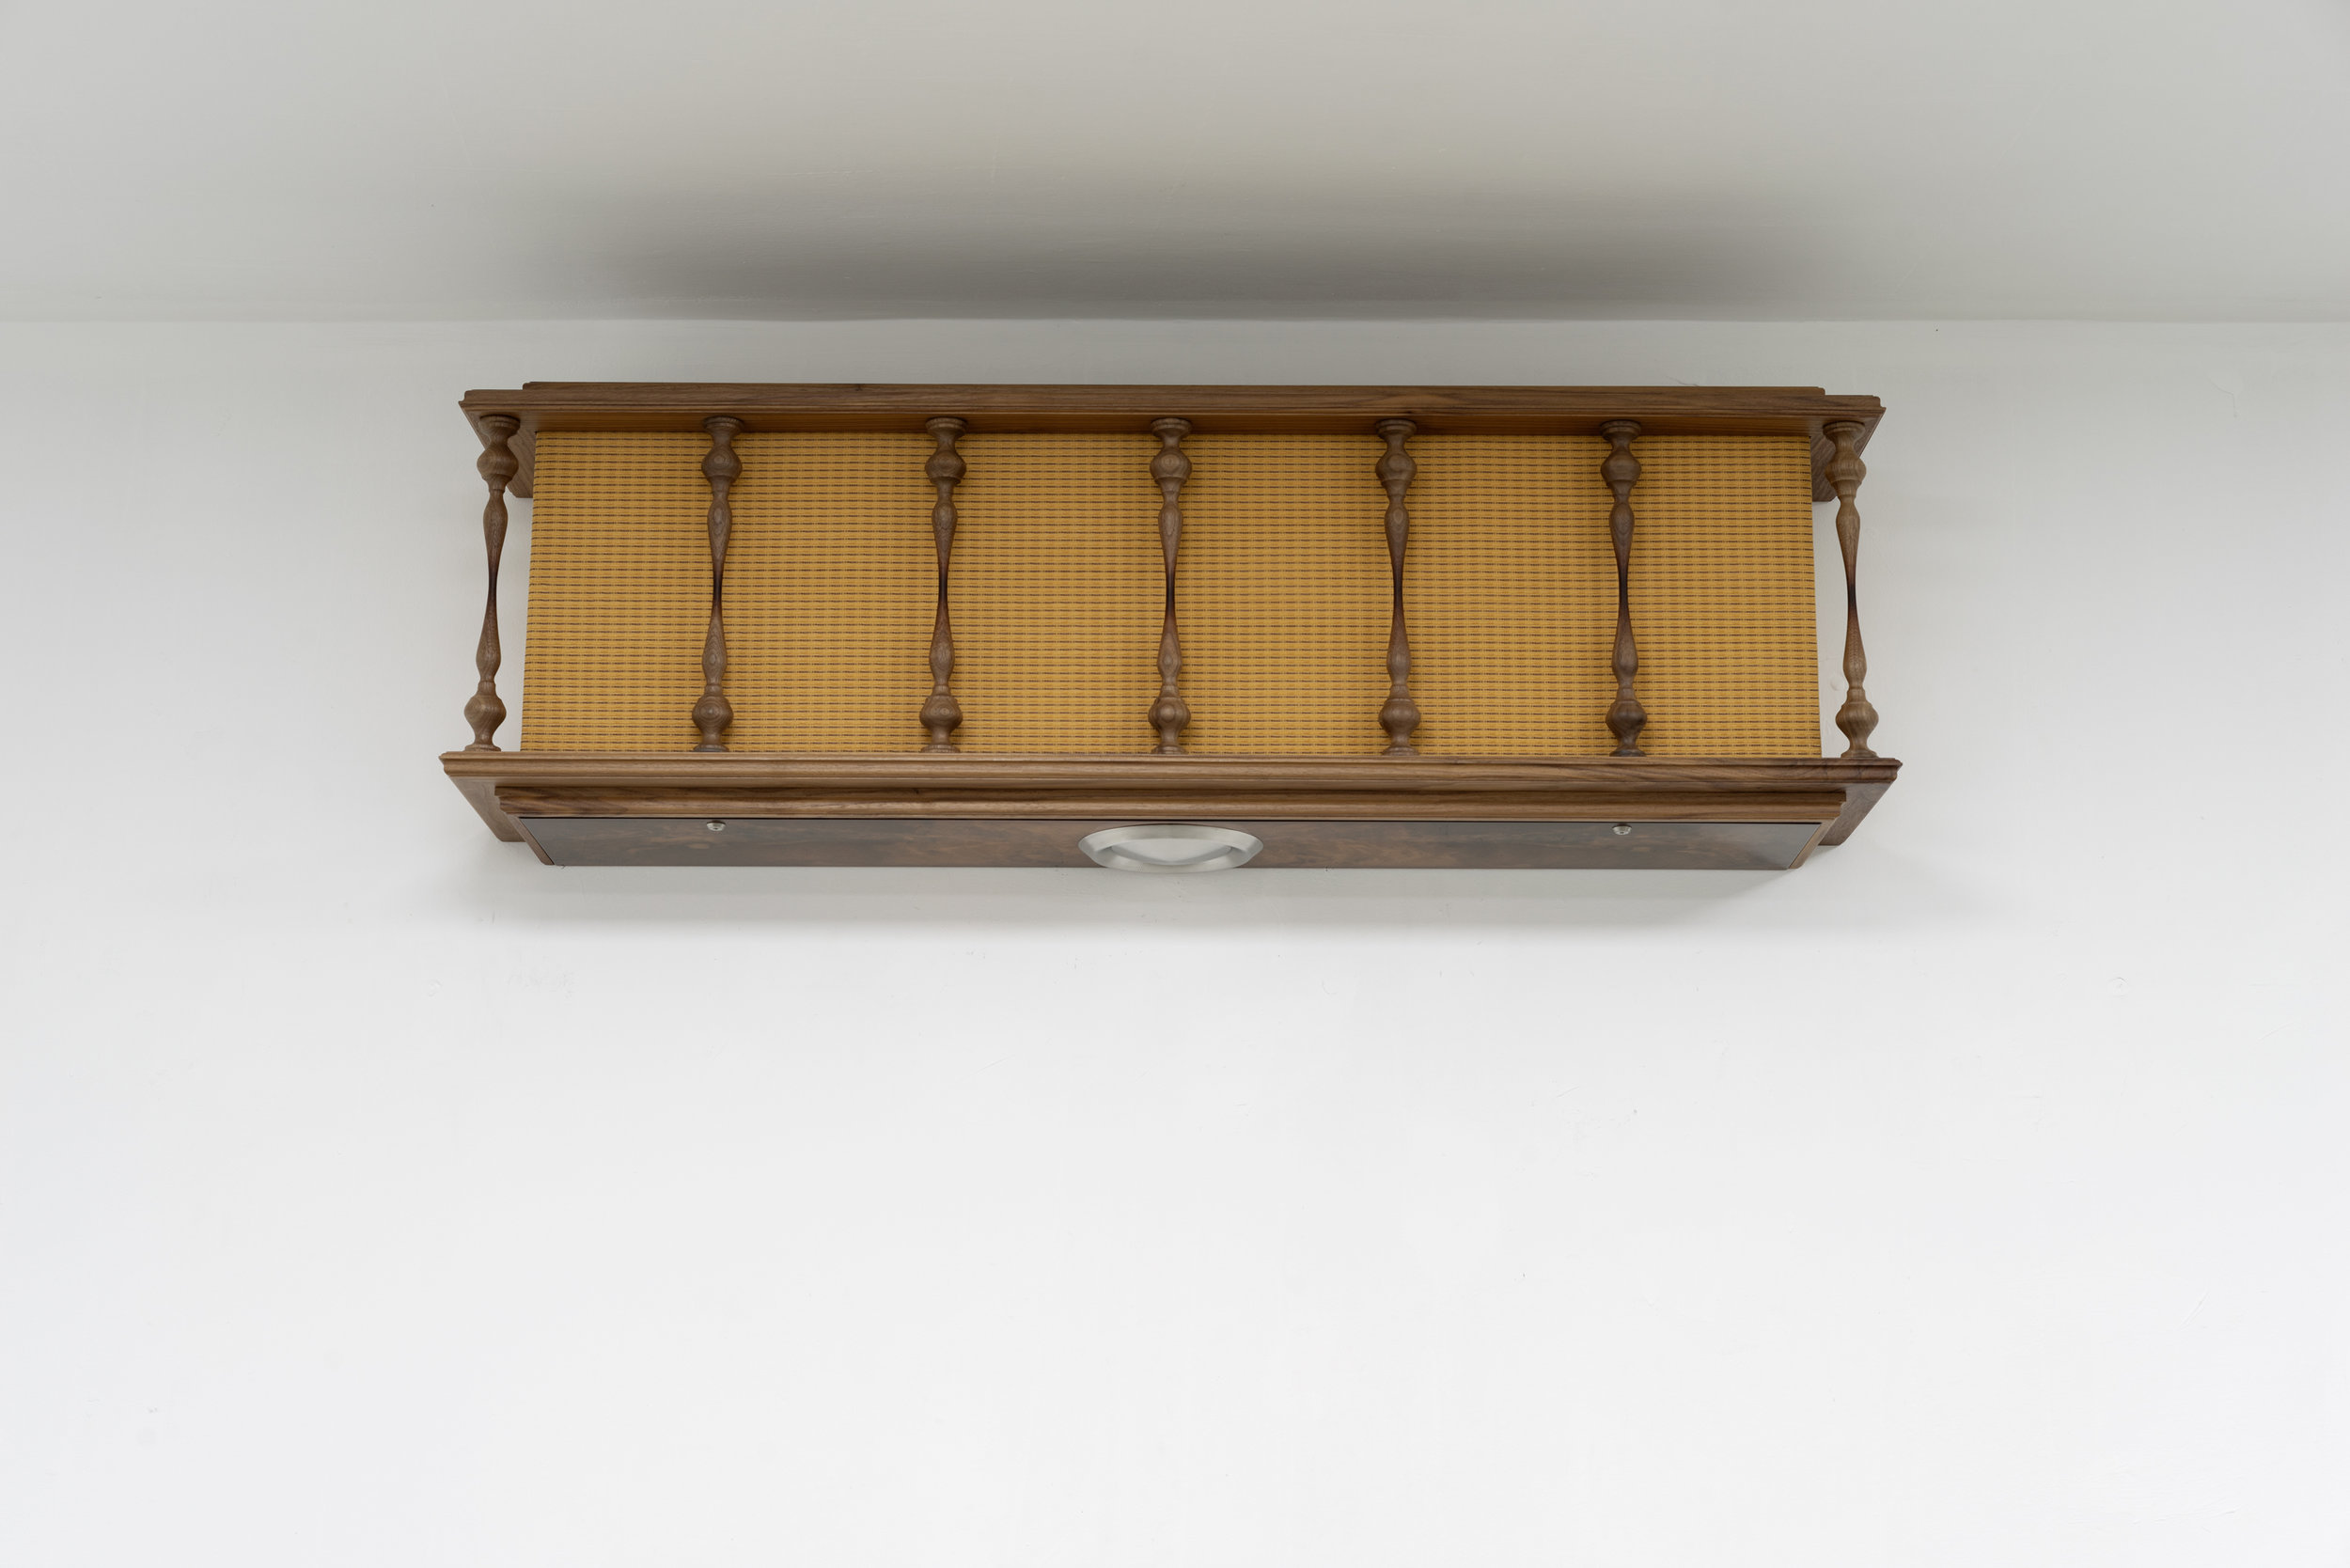 Philip Seibel,  Radiator (Columns),  2019, 106 x 32 x 21 cm, walnut wood, mdf, veneer, PUR paint, UP resin, speaker cloth, stainless steel vent cover, screws